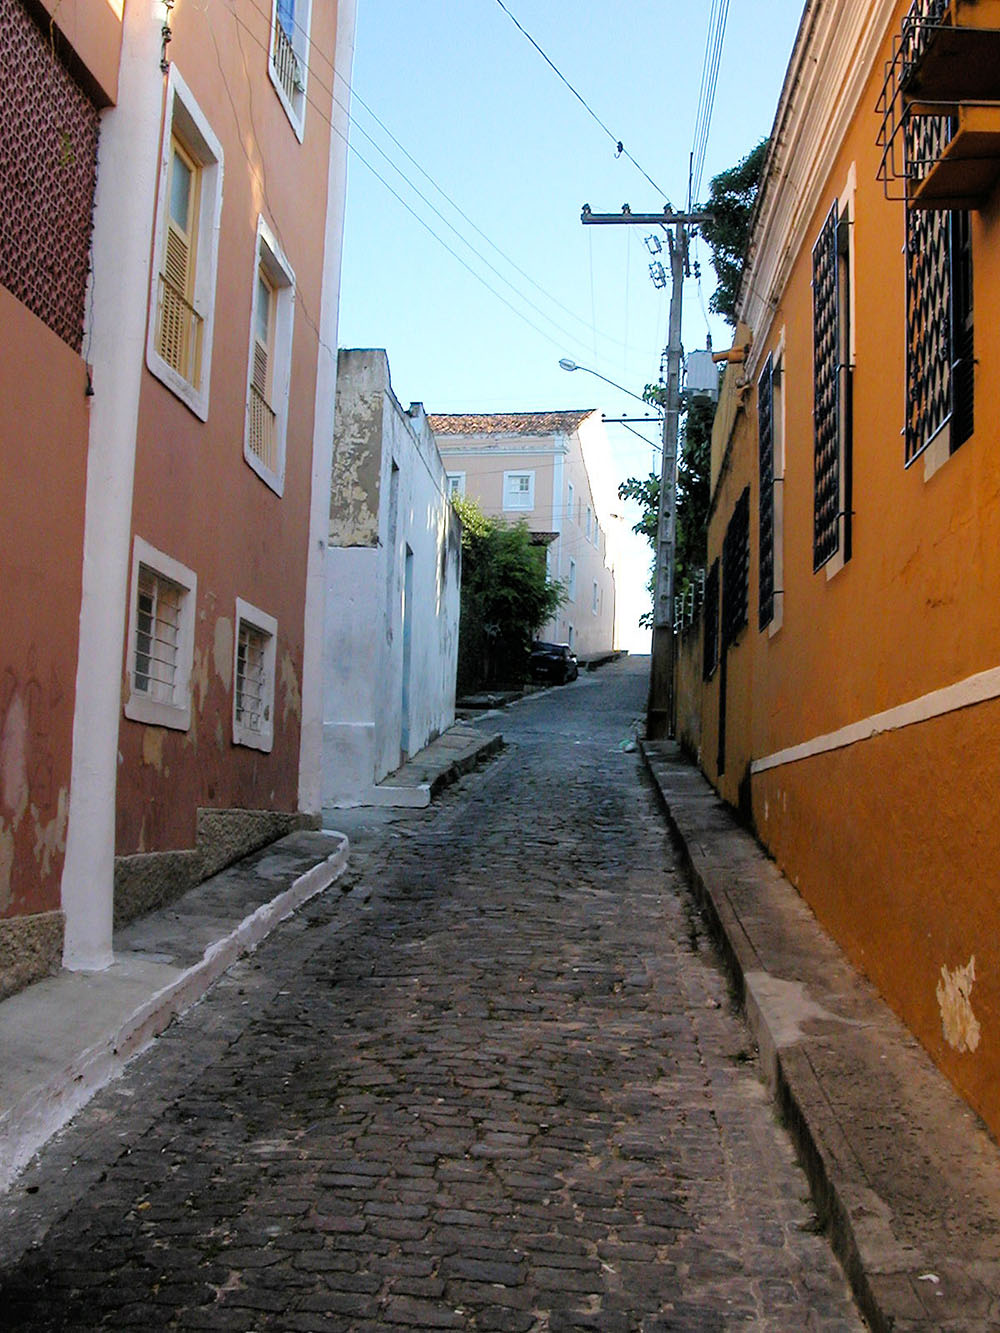 Colorful buildings in a cobblestone alleyway in Olinda Brazil